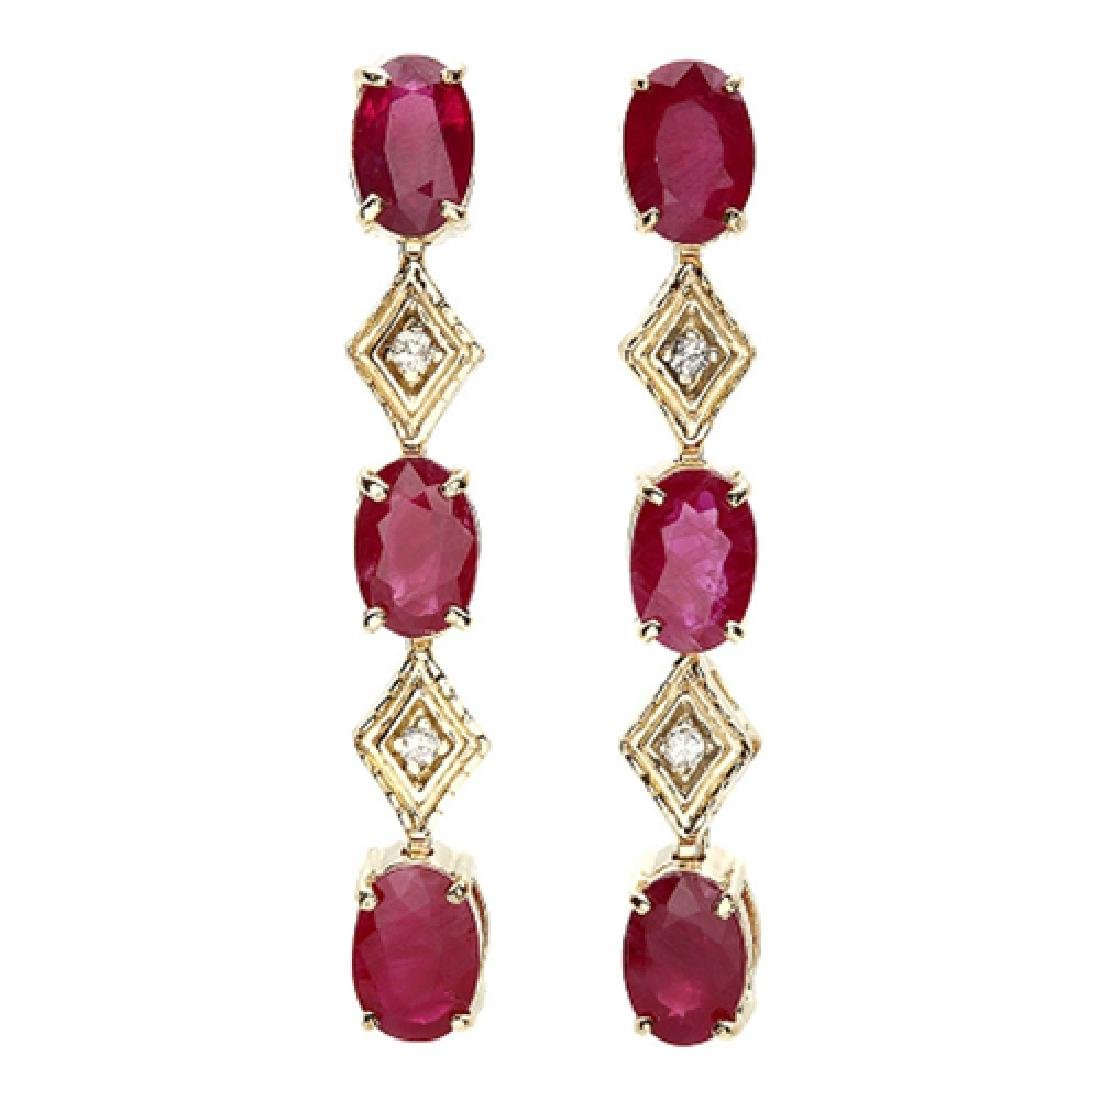 3.26 Carat Natural Ruby 18K Solid Yellow Gold Diamond